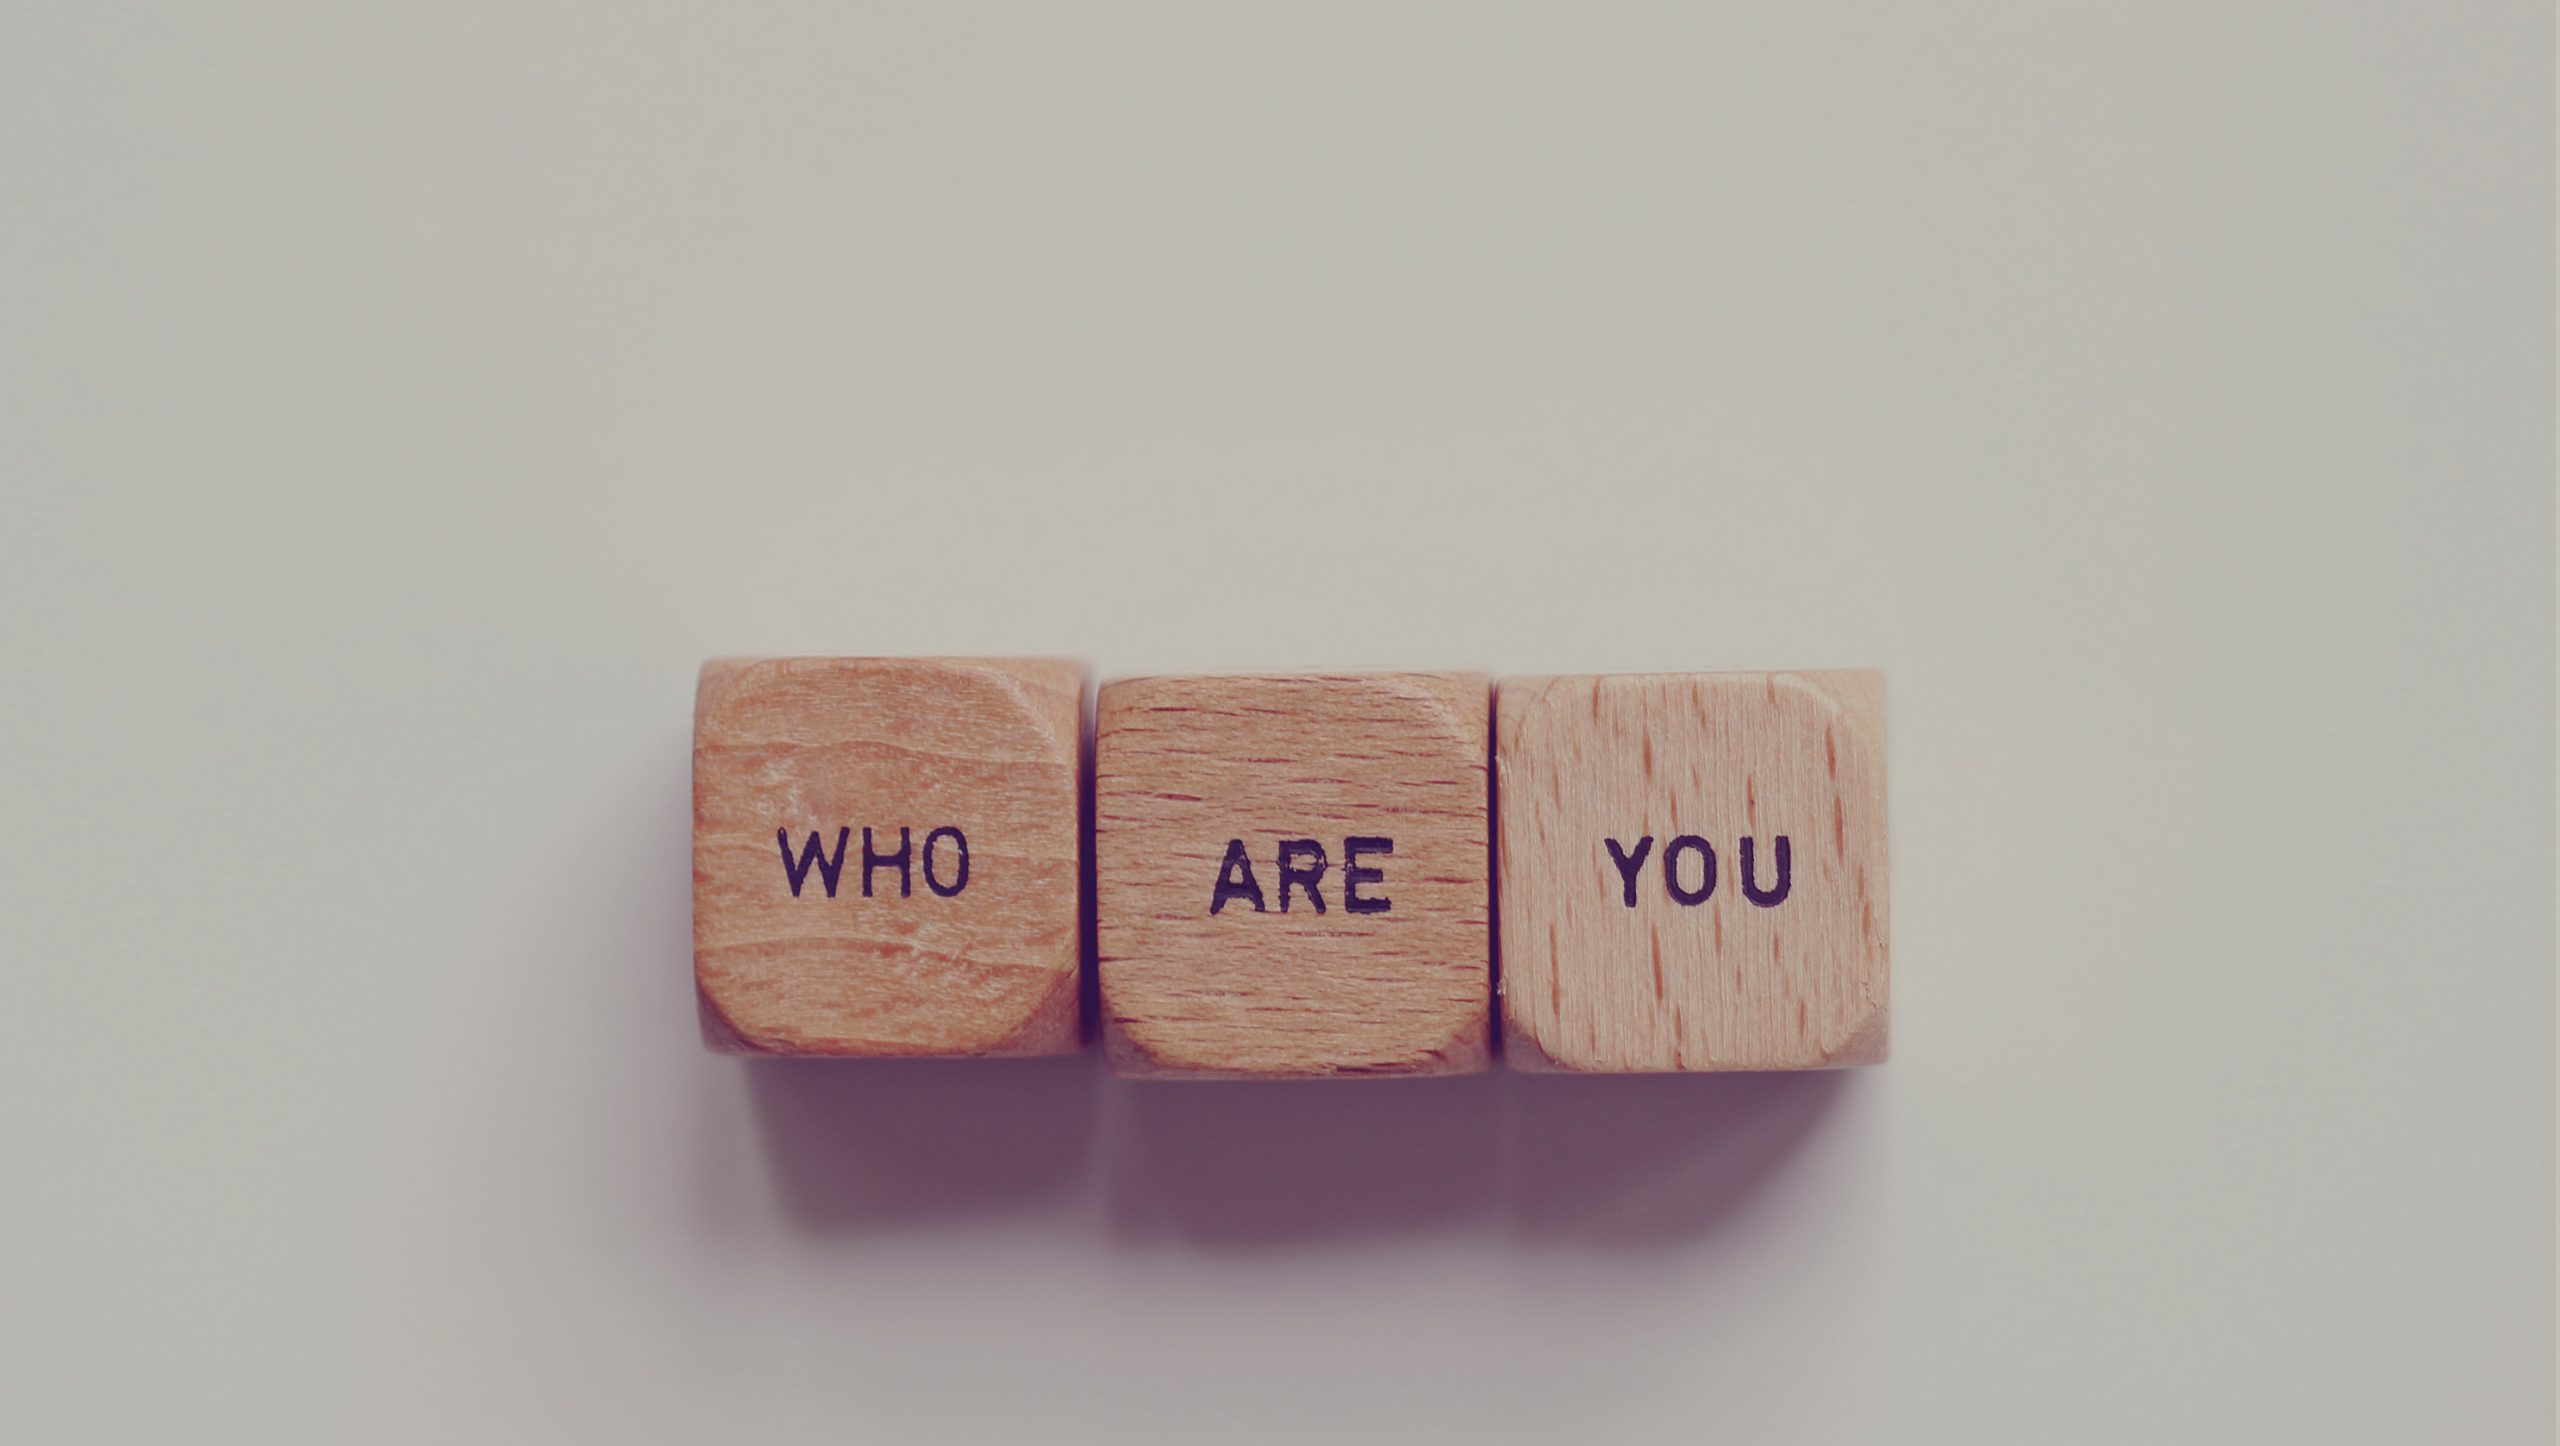 Who are You? Who, who, who, who? Verifications in 2021